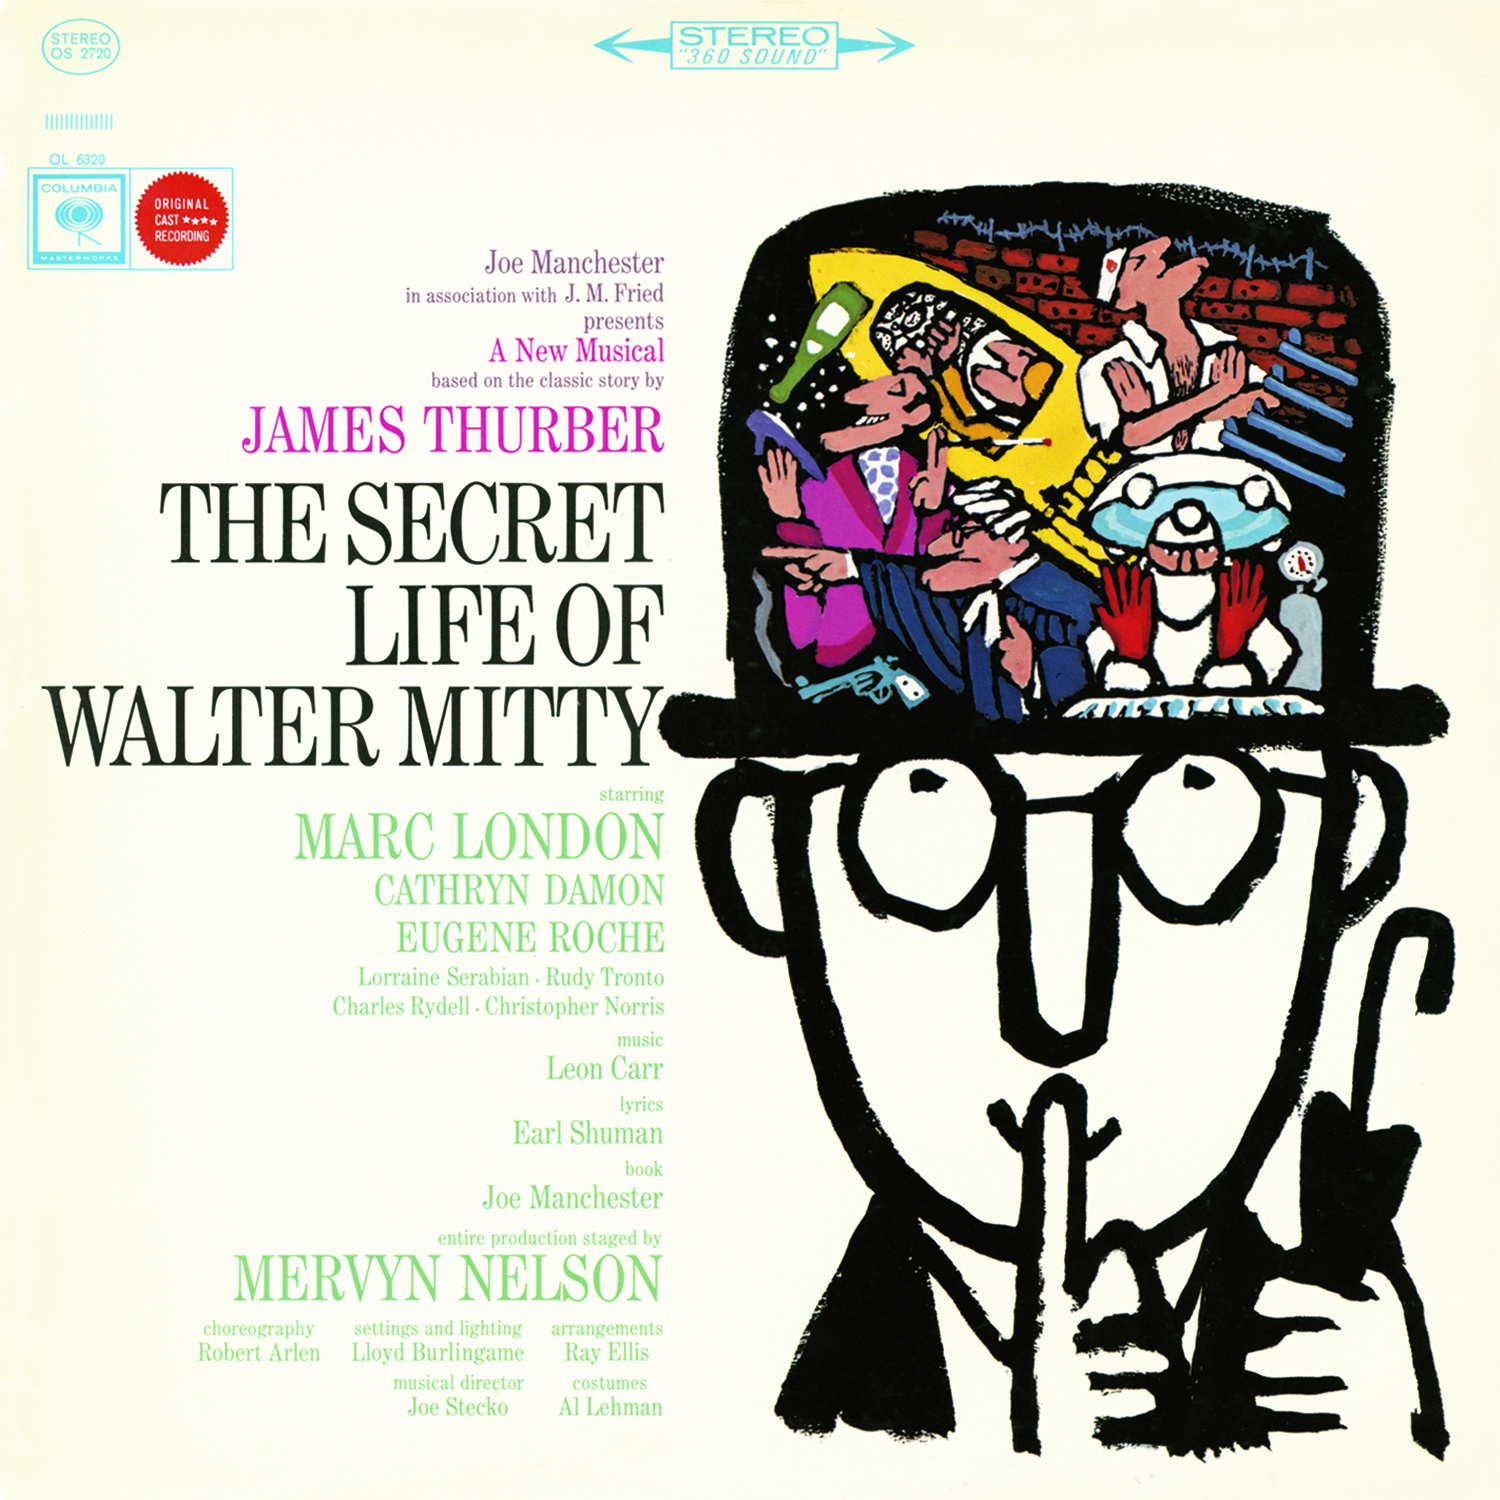 an analysis of the secret life of walter mitty by james thurber Look for a summary or analysis of this story  pages: 1 of 3 « 1 2 3 » page: the secret life of walter mitty by james thurber []  walter mitty drove on .